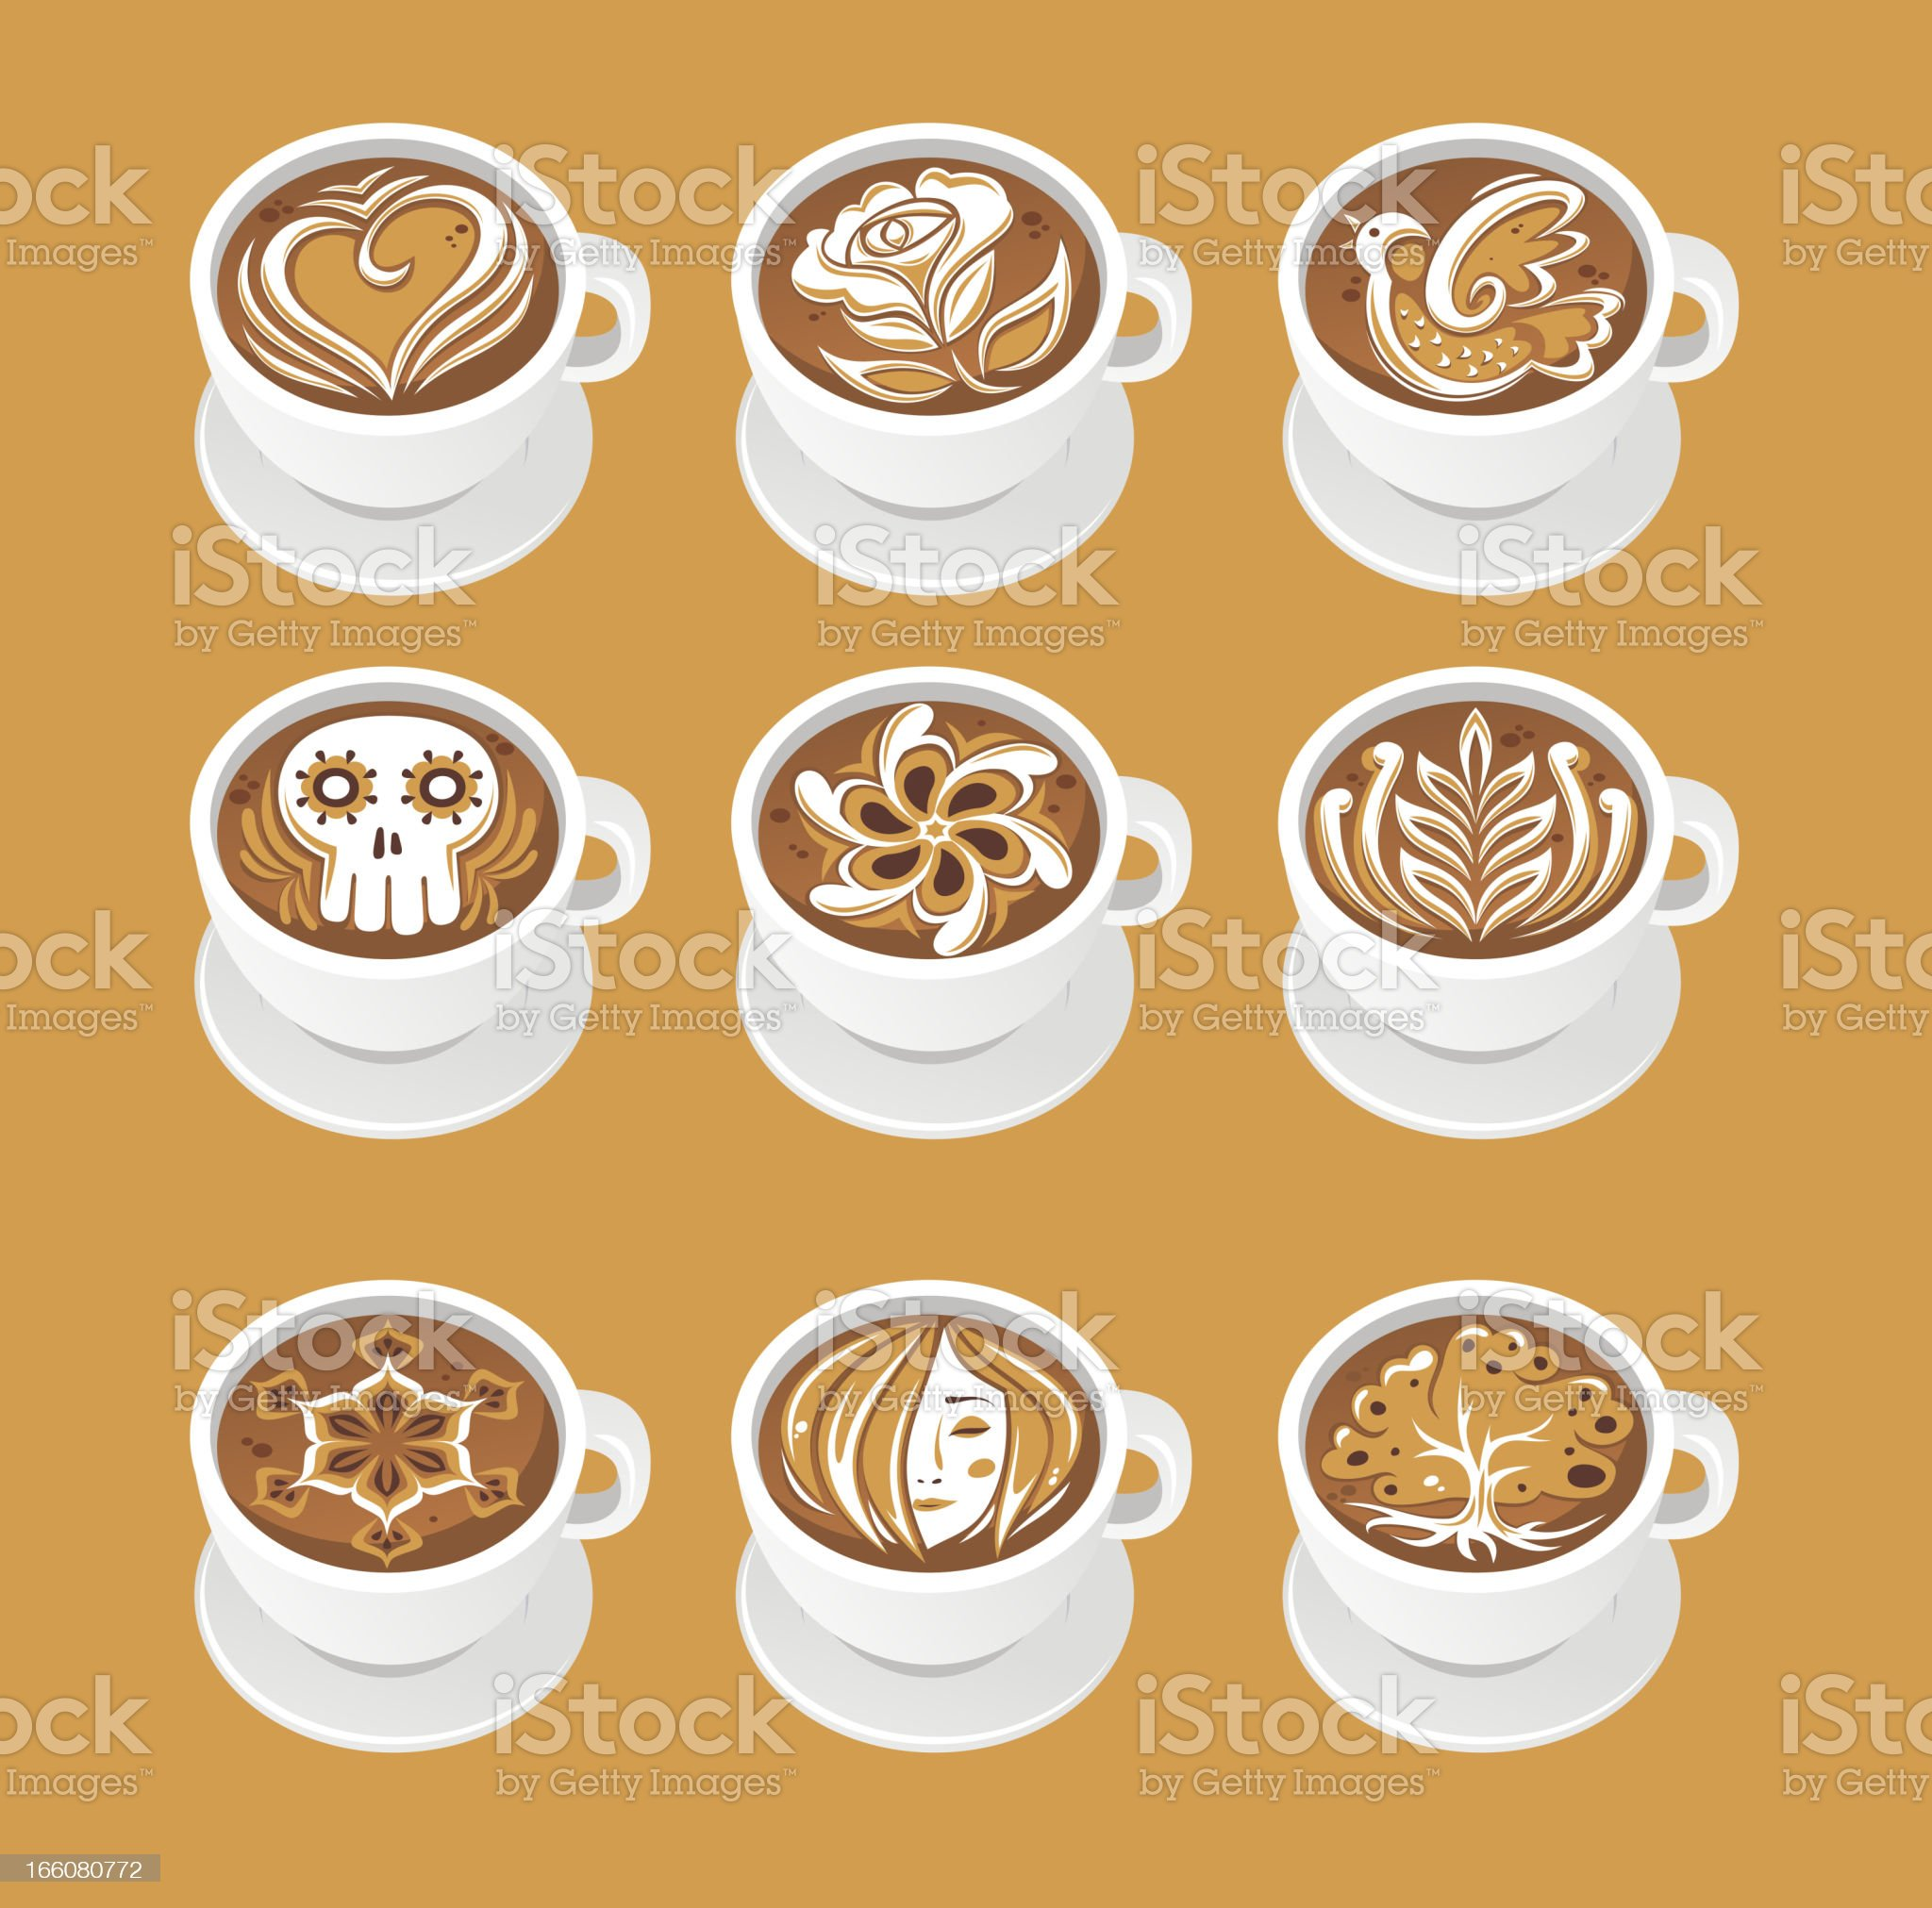 latte art royalty-free stock vector art